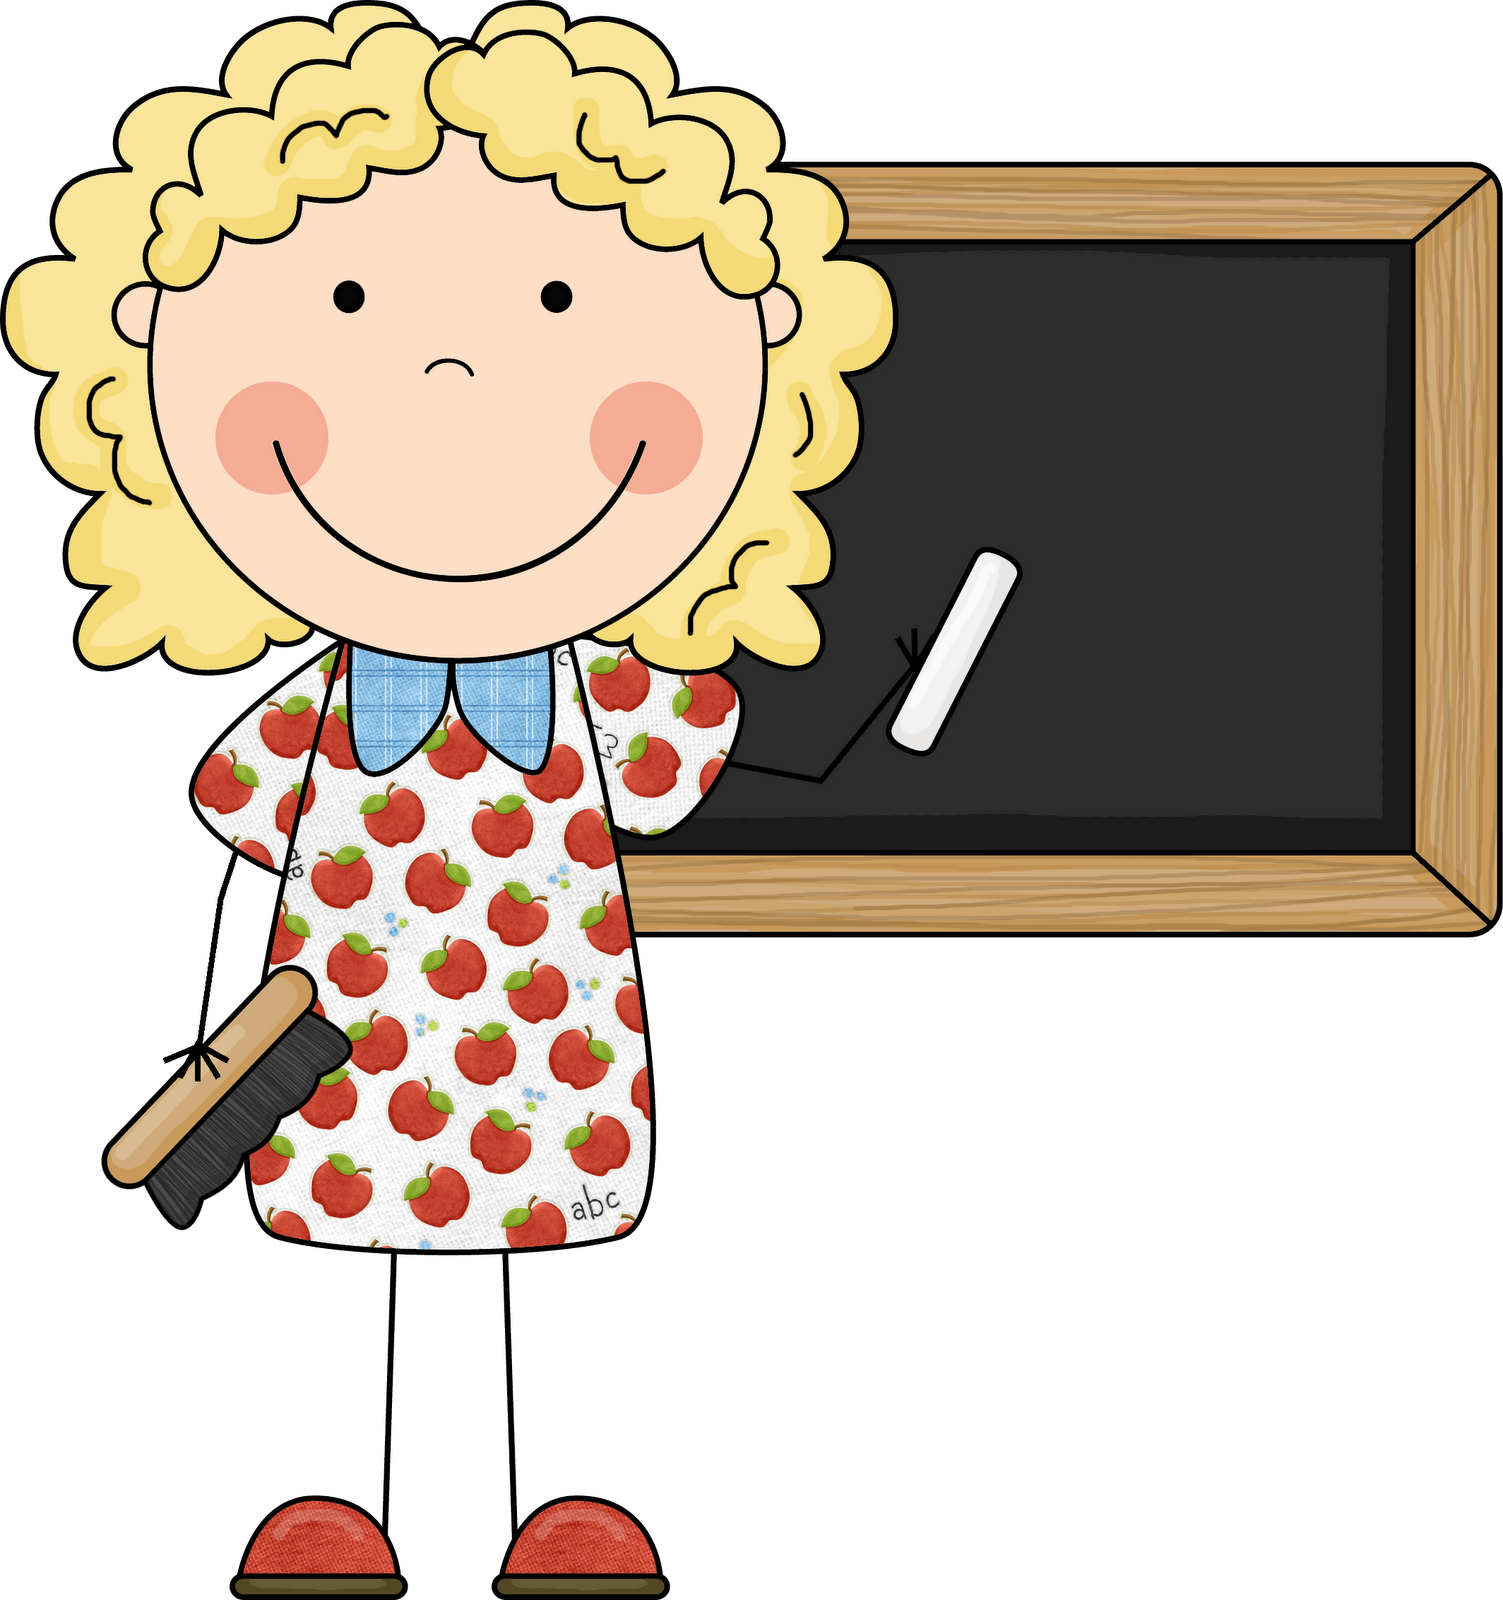 PNG HD For Teachers - 122928